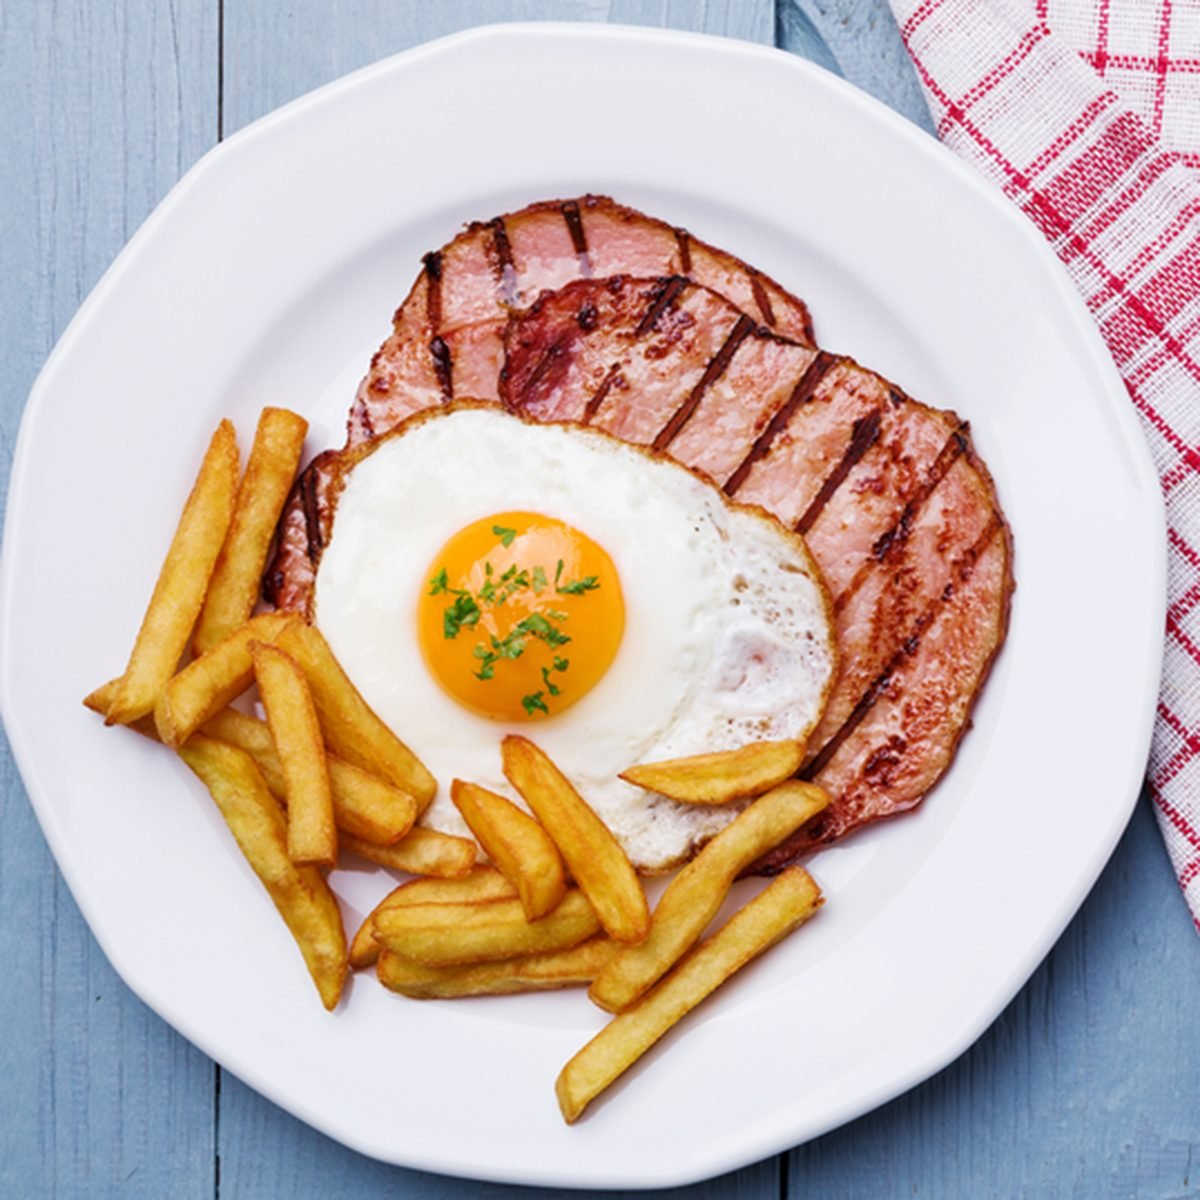 English breakfast with grilled ham, fried egg and french fries.